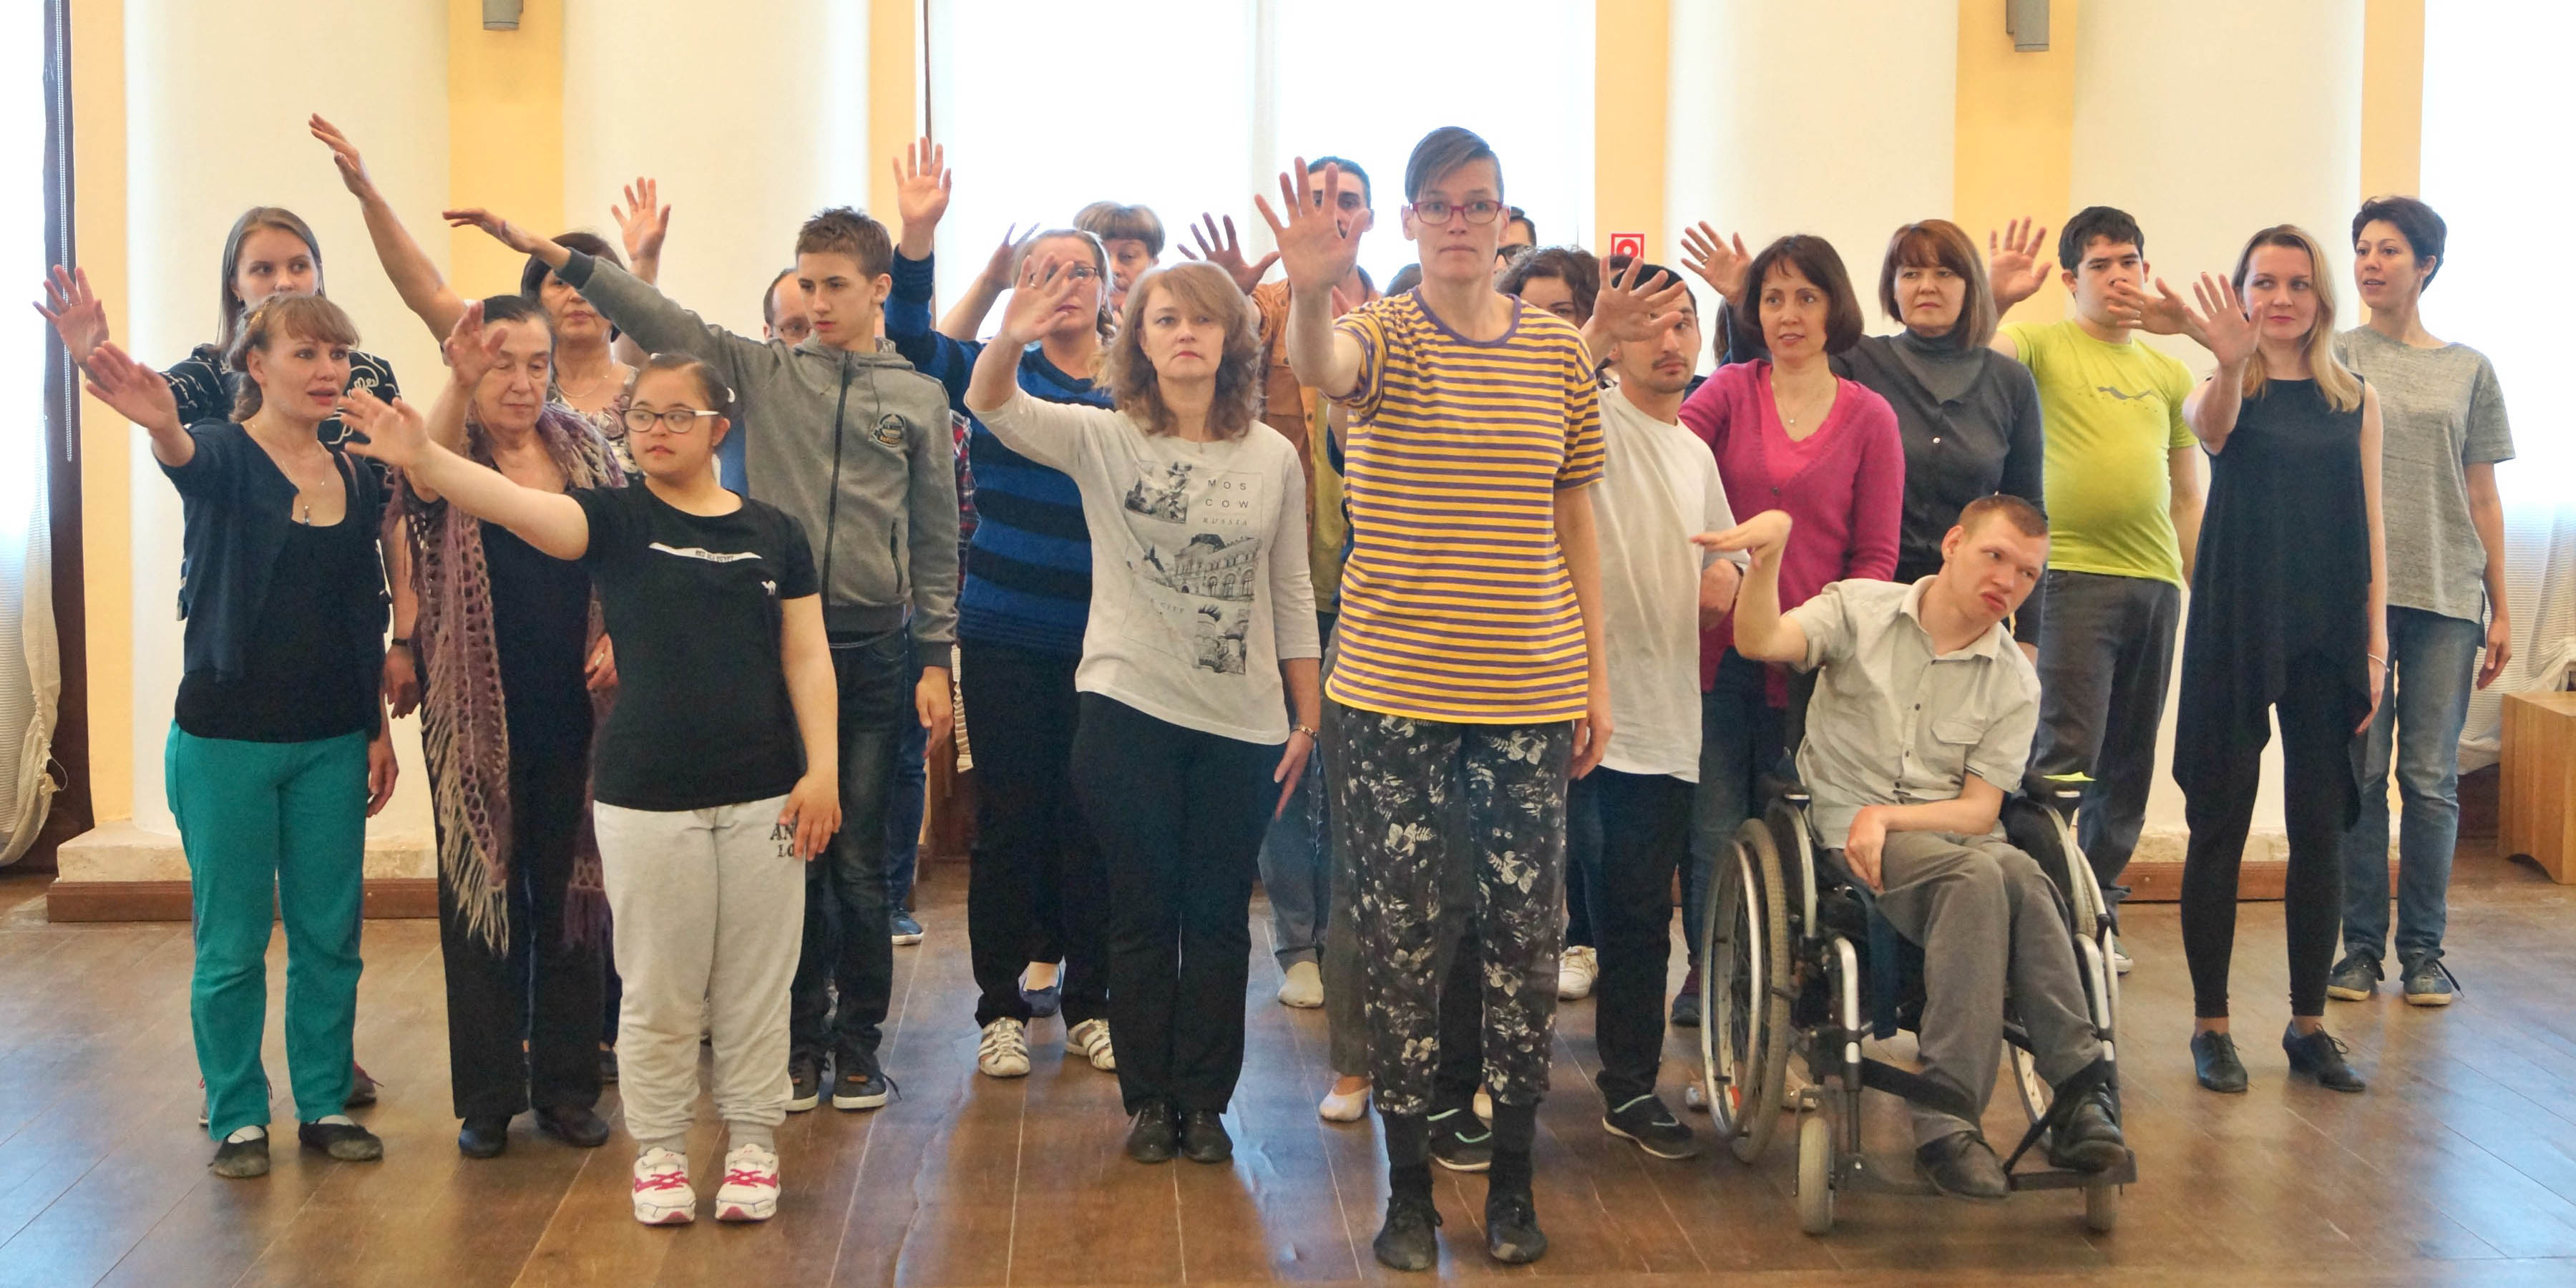 Image from when Veera Suvalo Grimberg is leading a workshop in Archangelsk